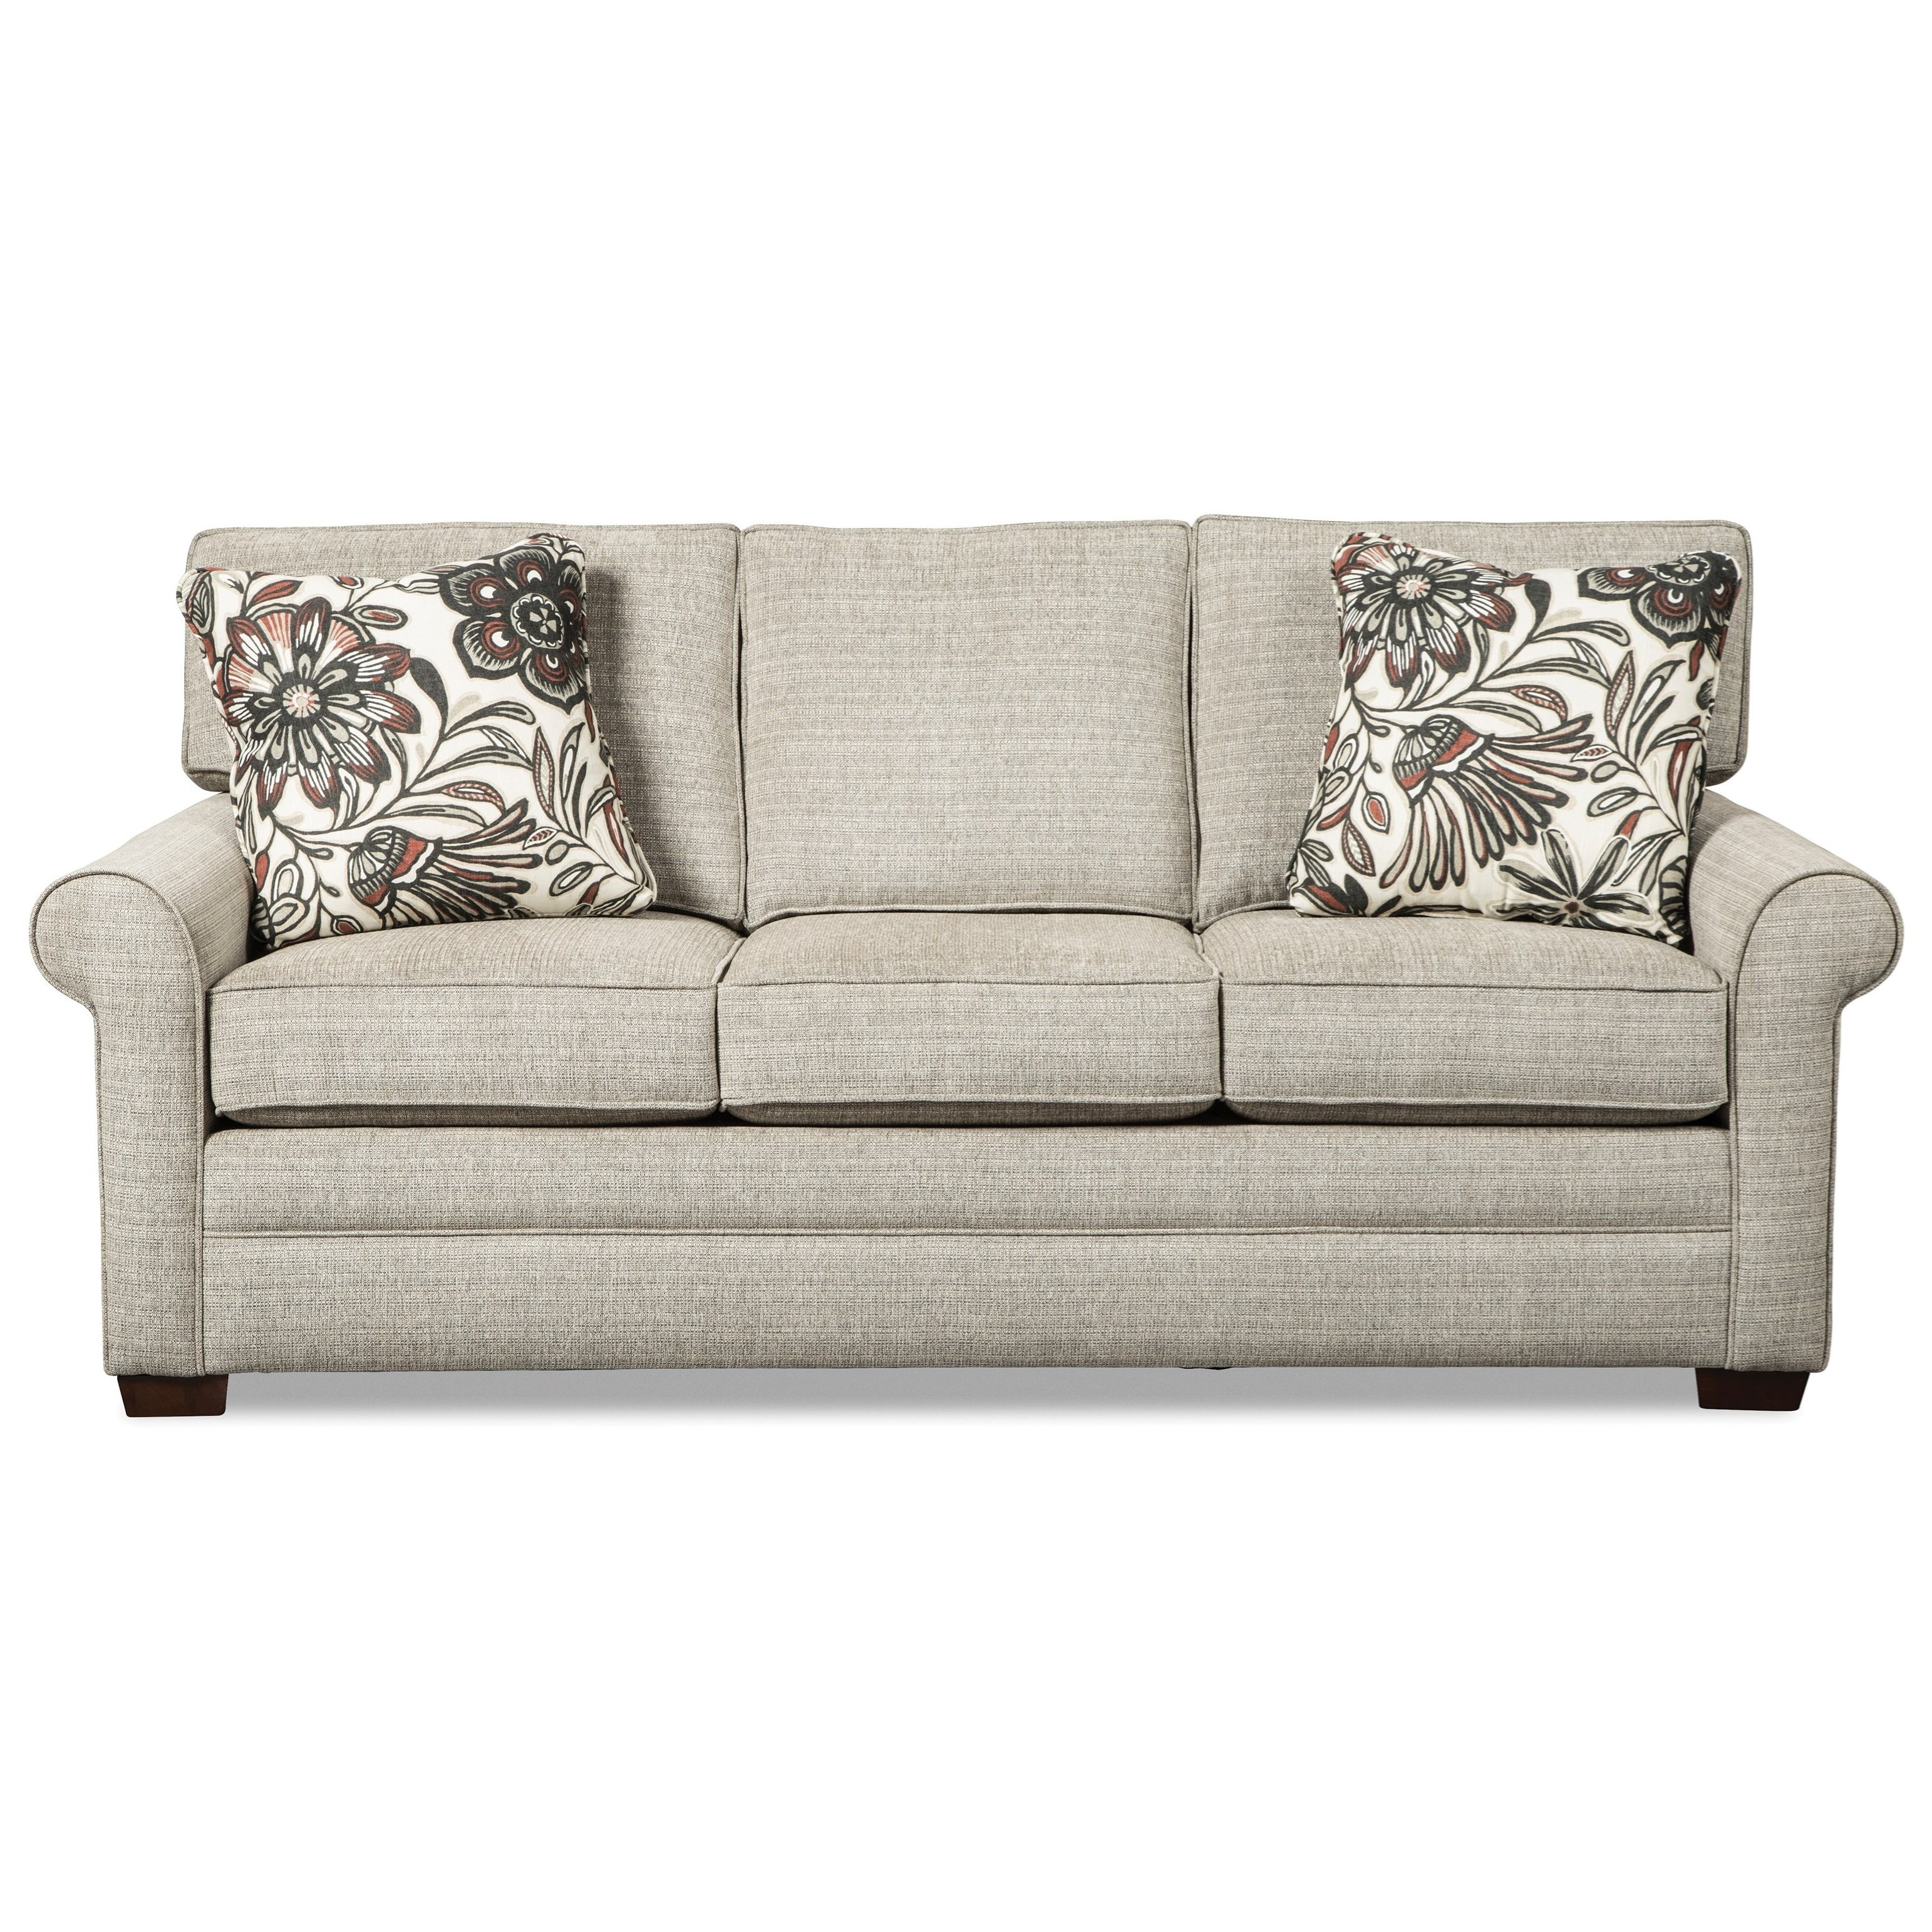 Loose Pillow Back Sofa: Craftmaster 7523 Transitional Sofa With Rolled Arms And